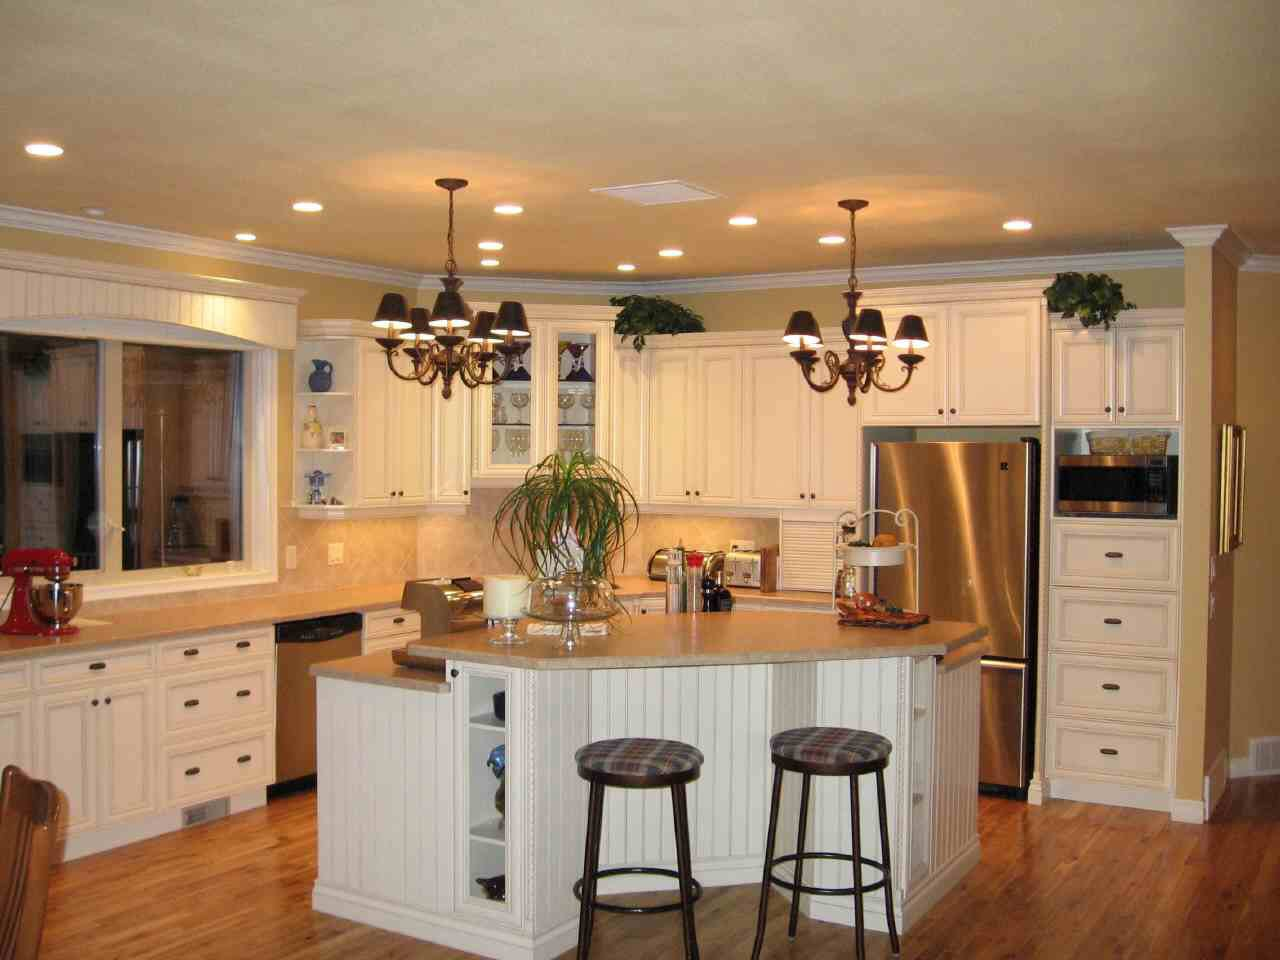 Perfect Kitchen Island Design Ideas for Small Kitchens 1280 x 960 · 109 kB · jpeg